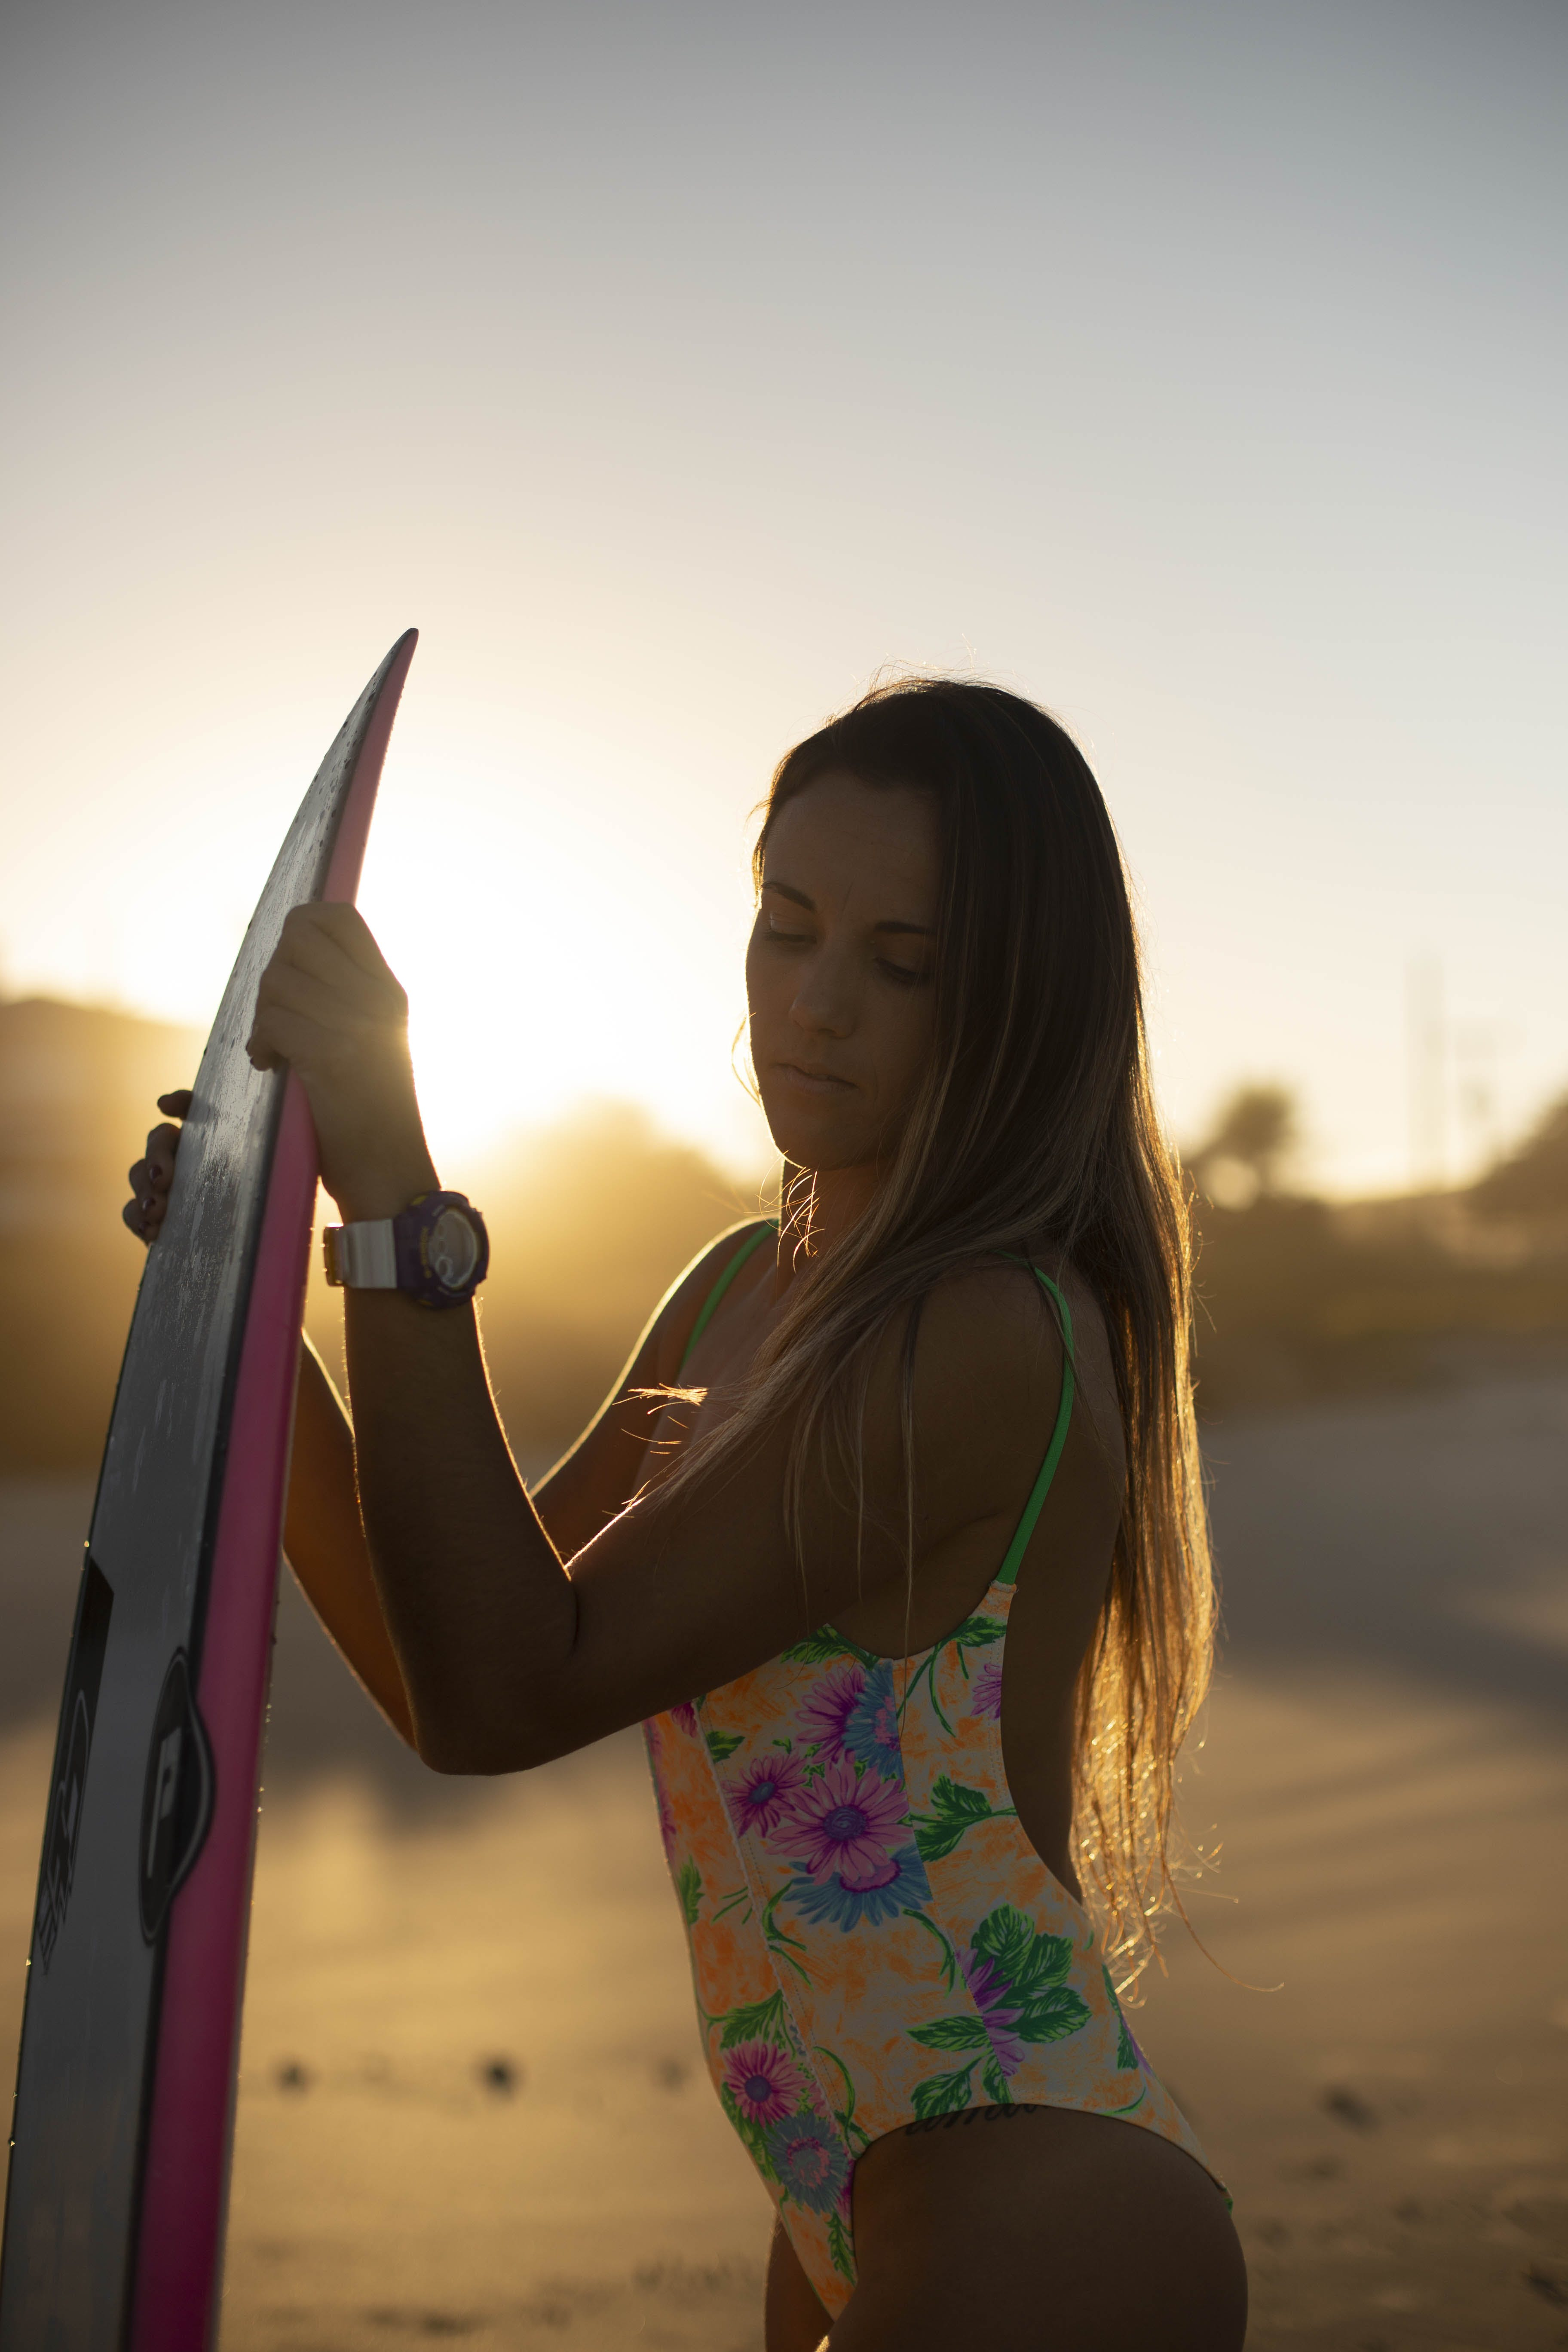 Woman in Yellow and Green Floral One-piece Swimsuit Holding Surfboard